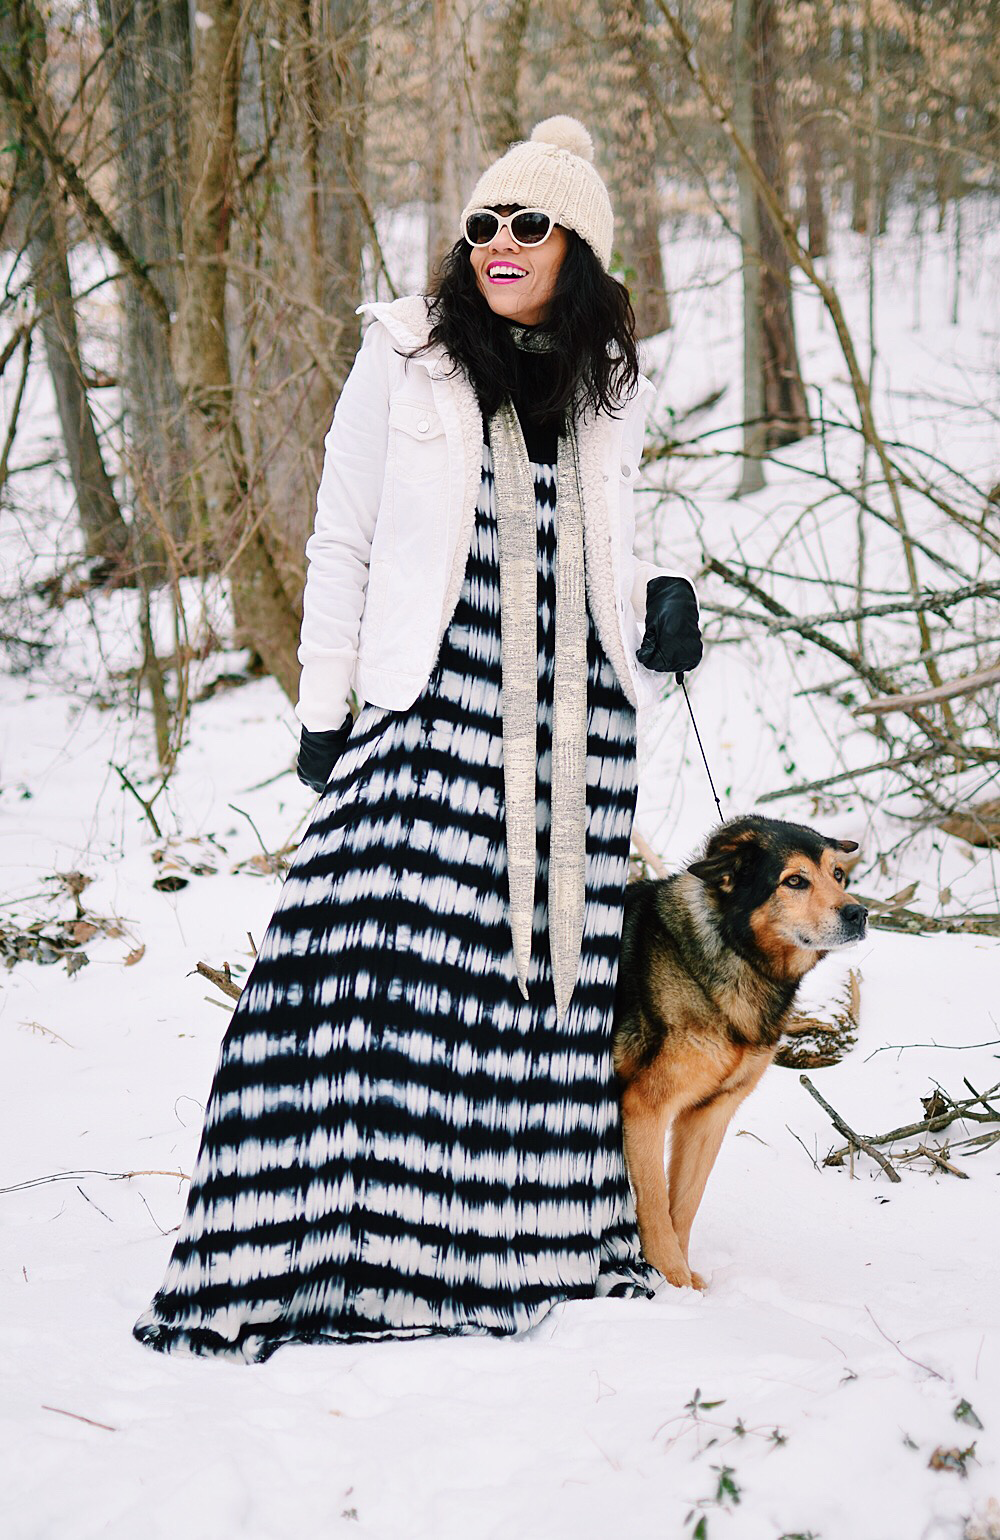 Maxi Dress In The Snow